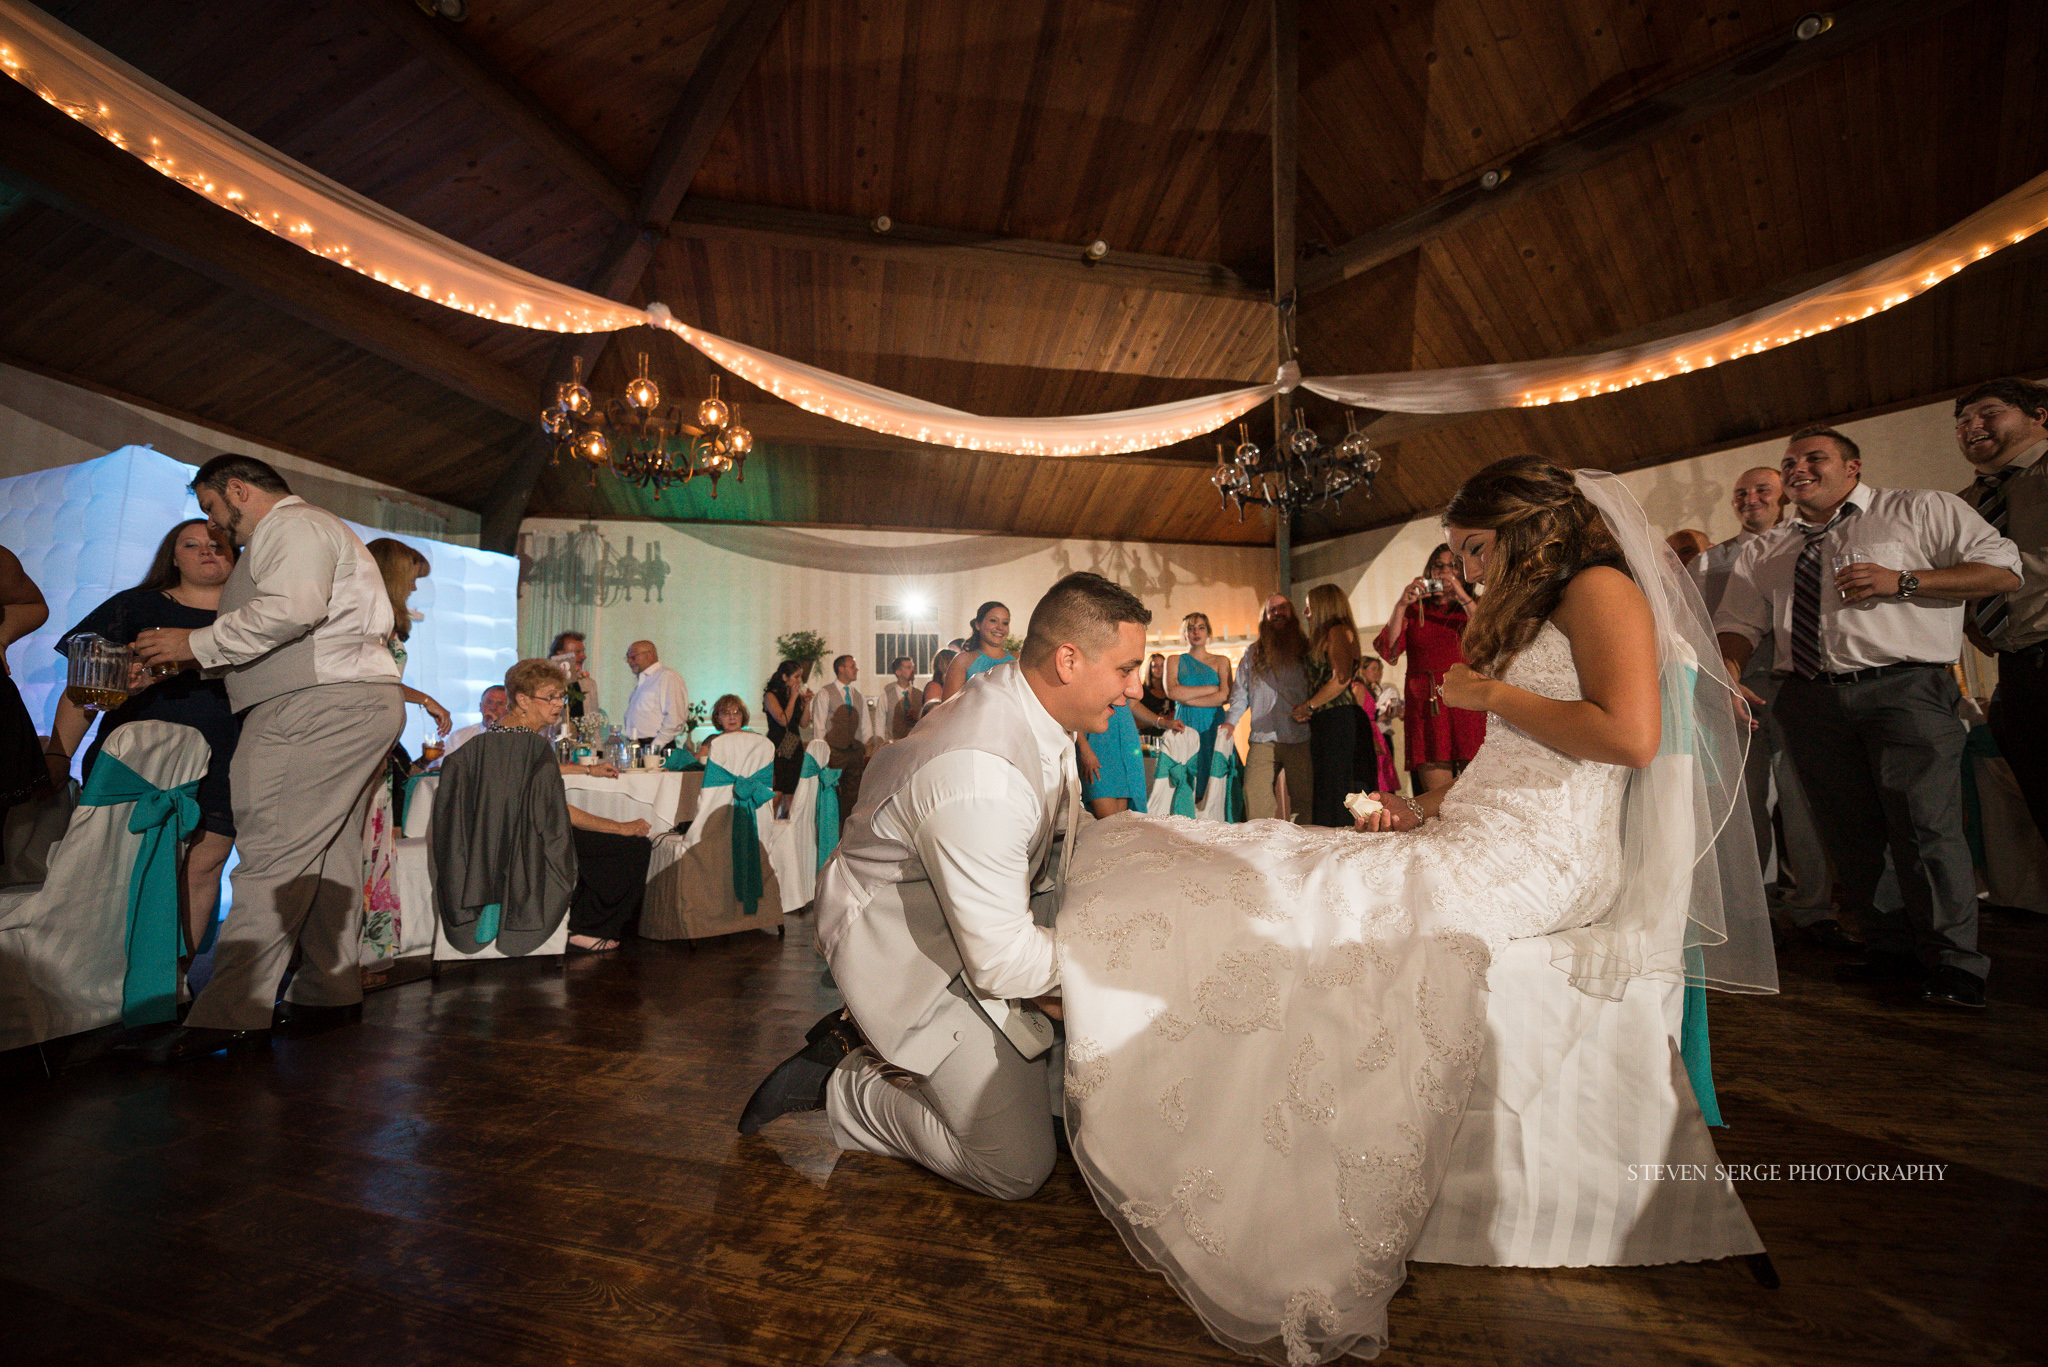 Clarks-Summit-PA-NEPA-Wedding-Photographer-Inn-Abingtons-Party-photography-steven-serge-52.jpg